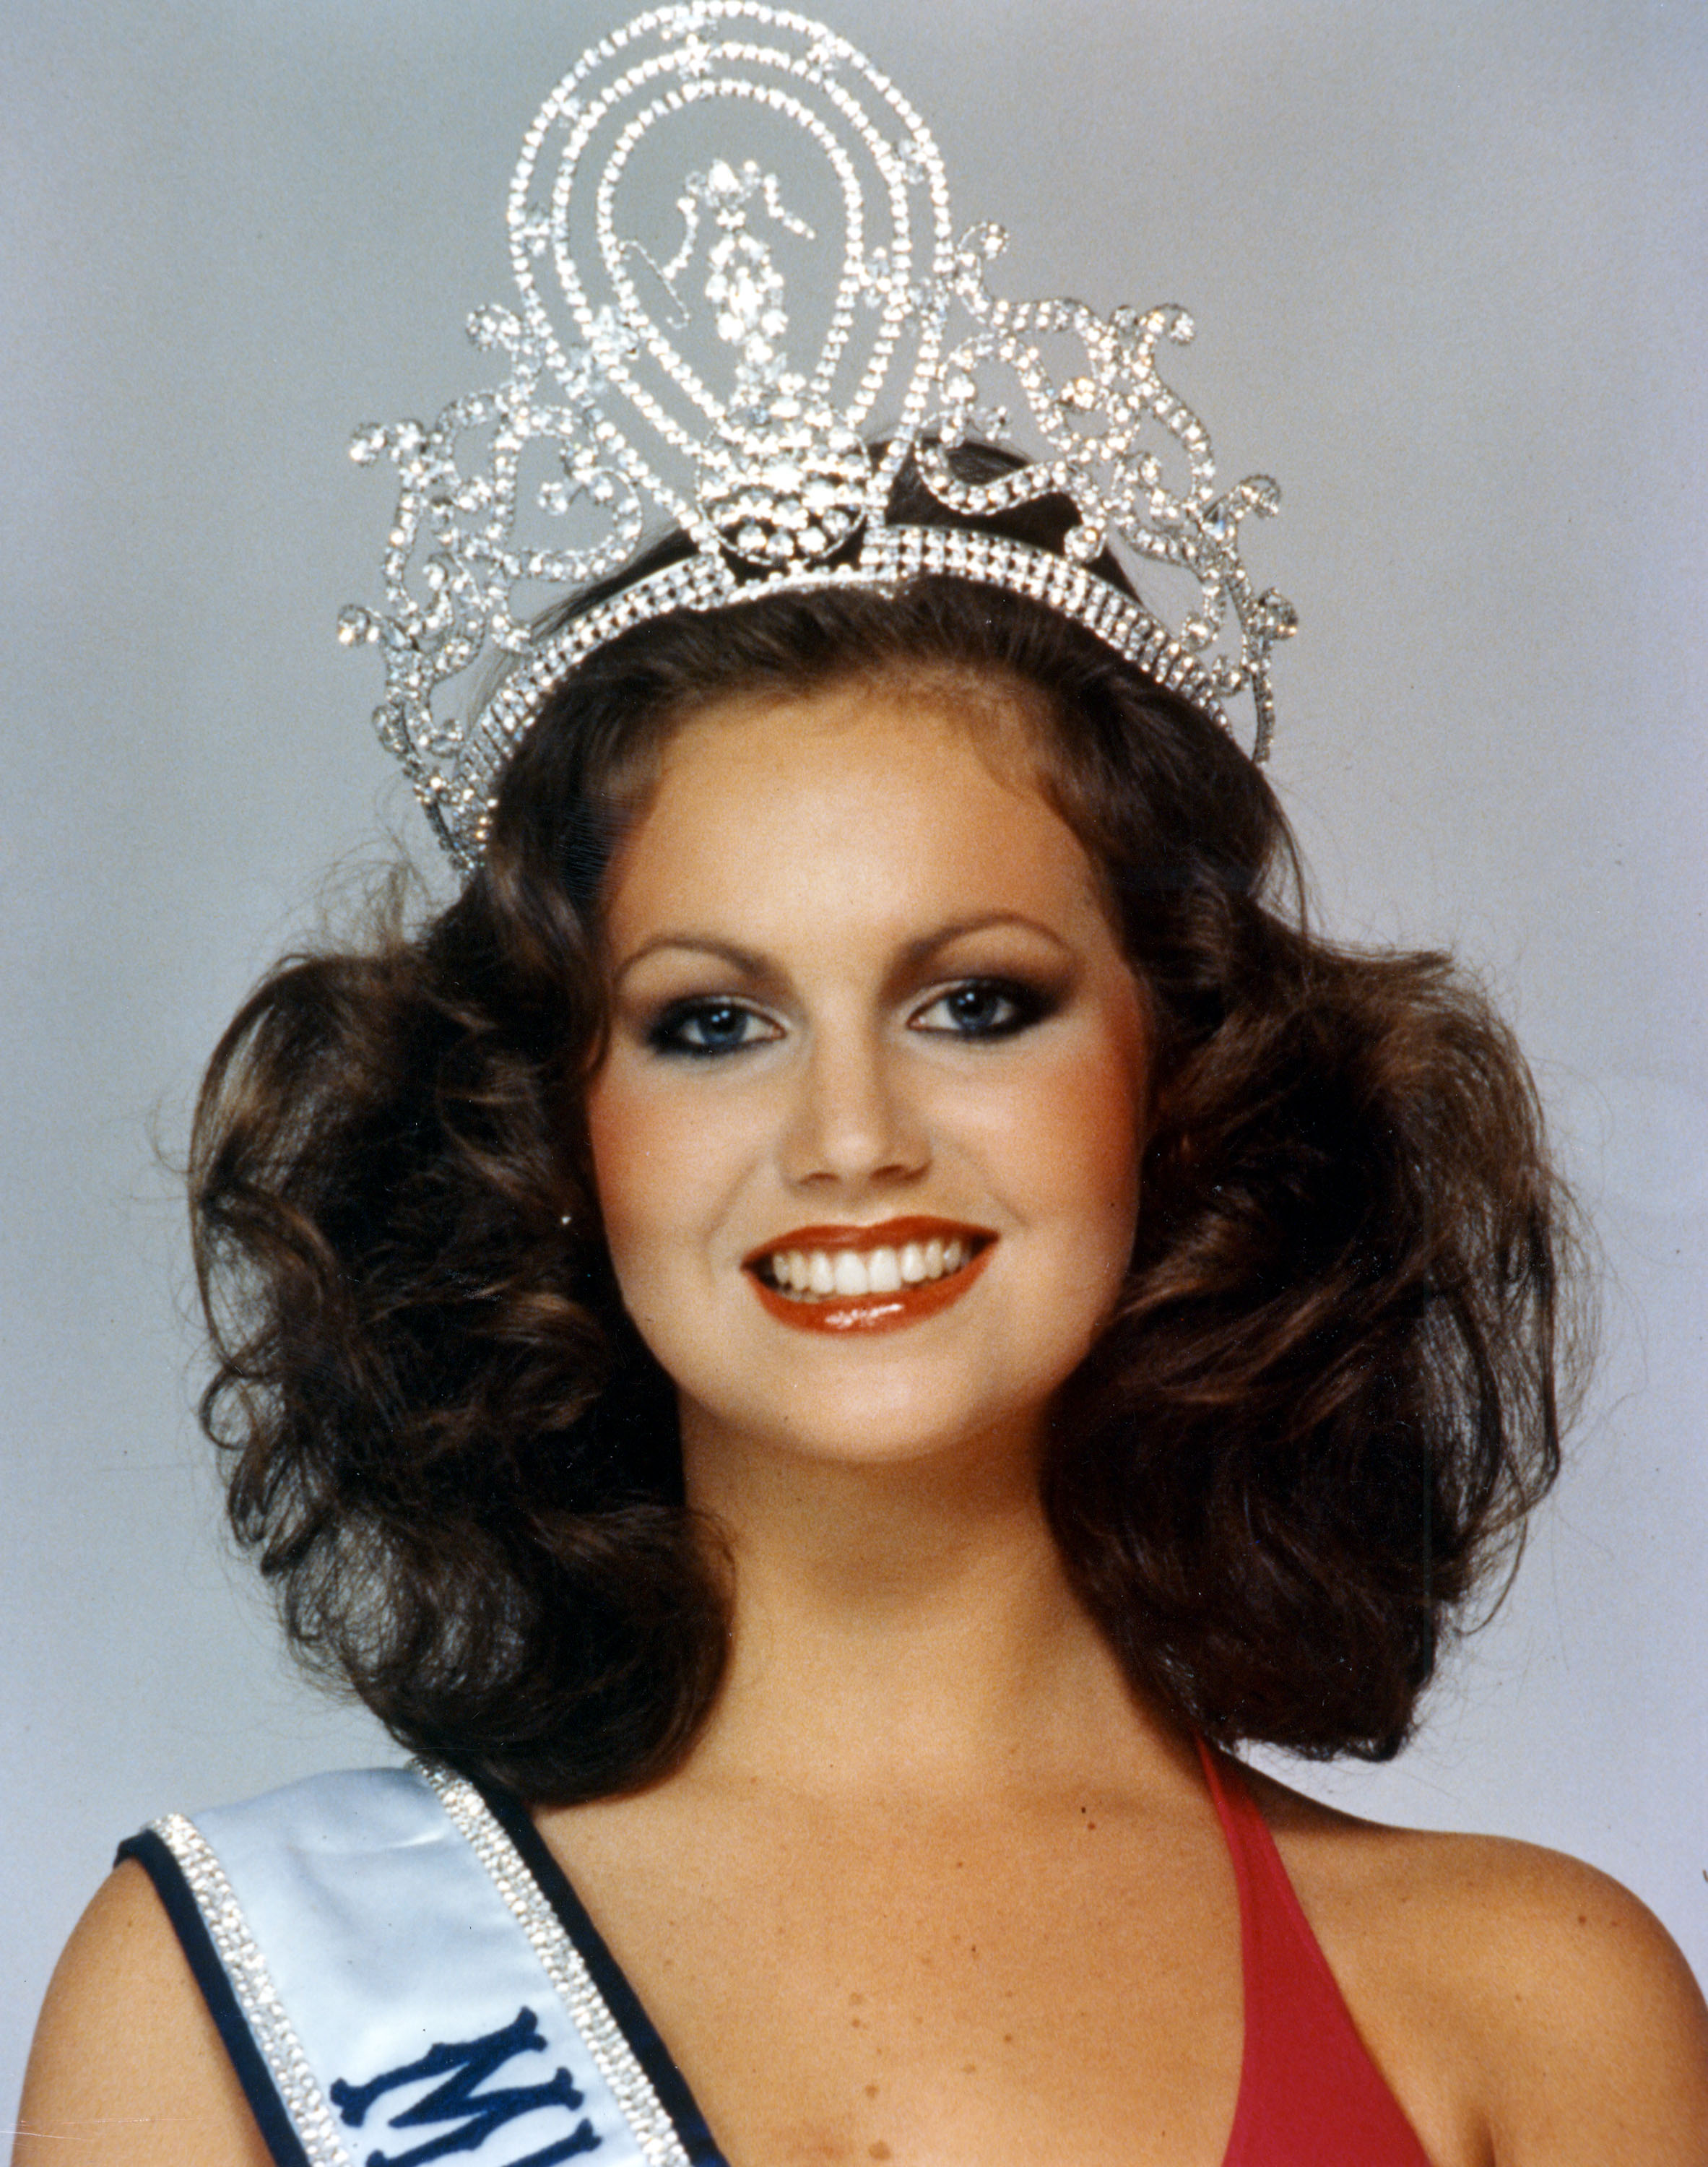 MISS UNIVERSE 1978. Margaret Gardiner, from South Africa, was a 19-year-old model when she won the crown.